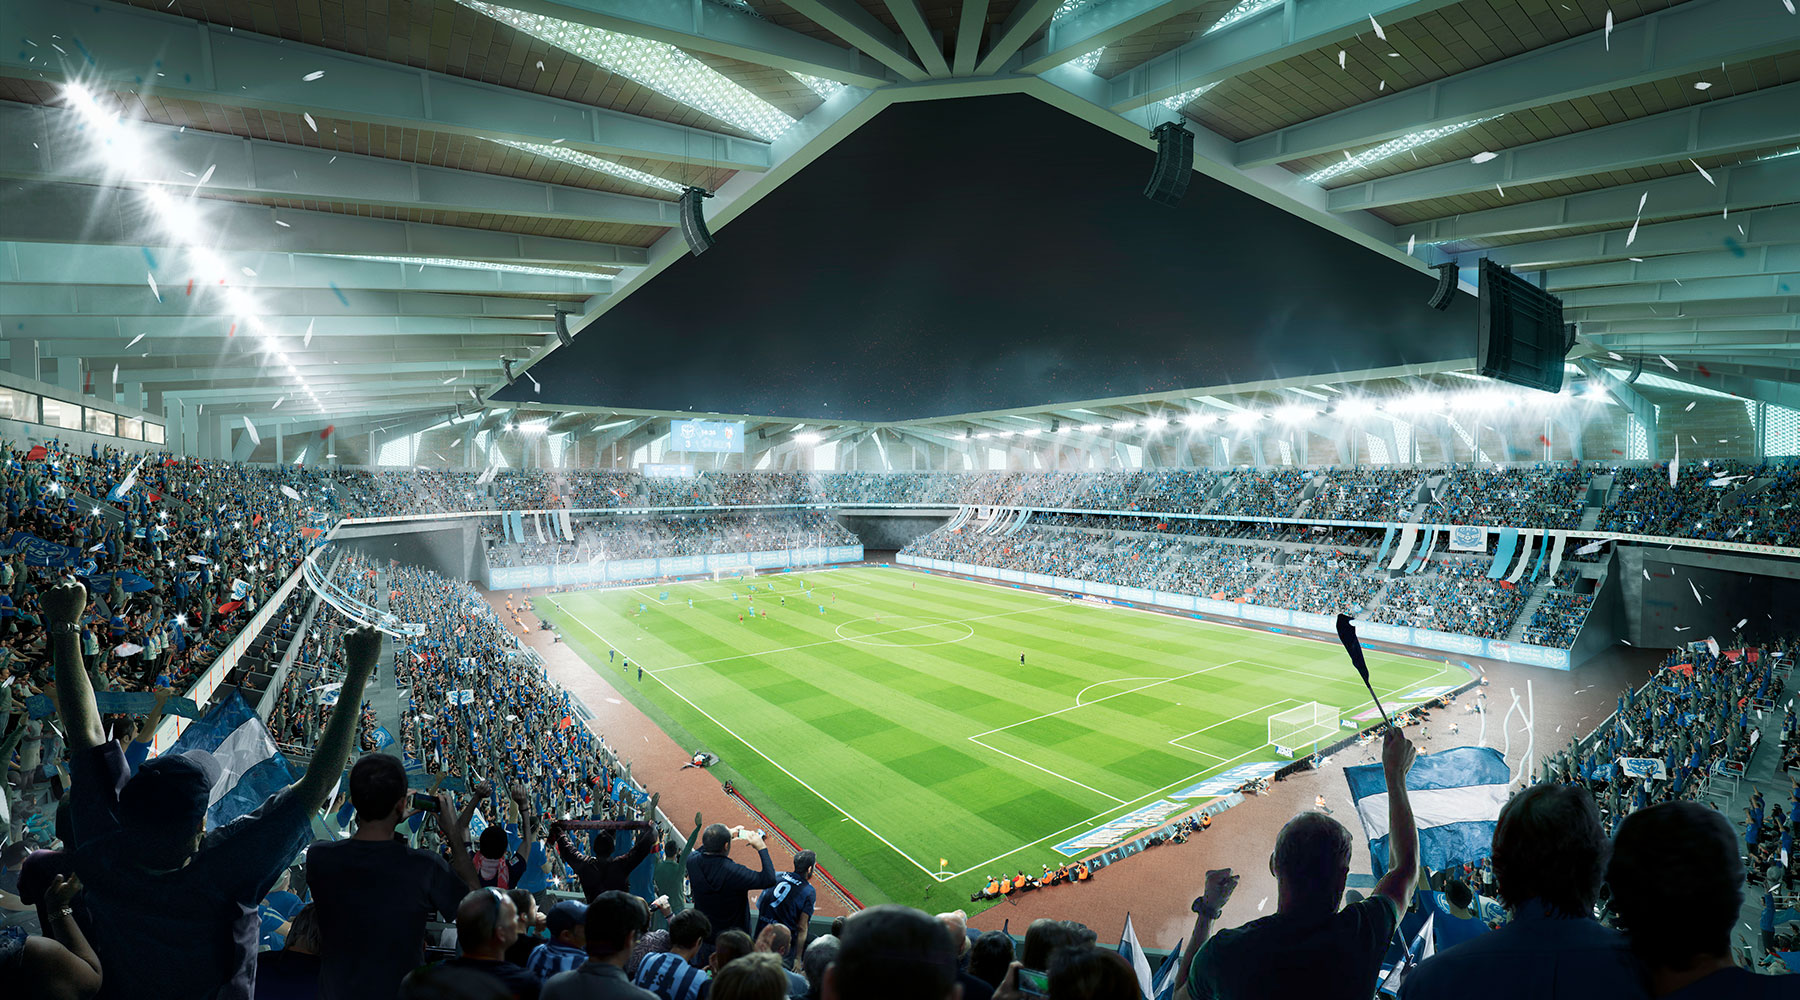 3D Architecture Stadium interior bowl rendering Image